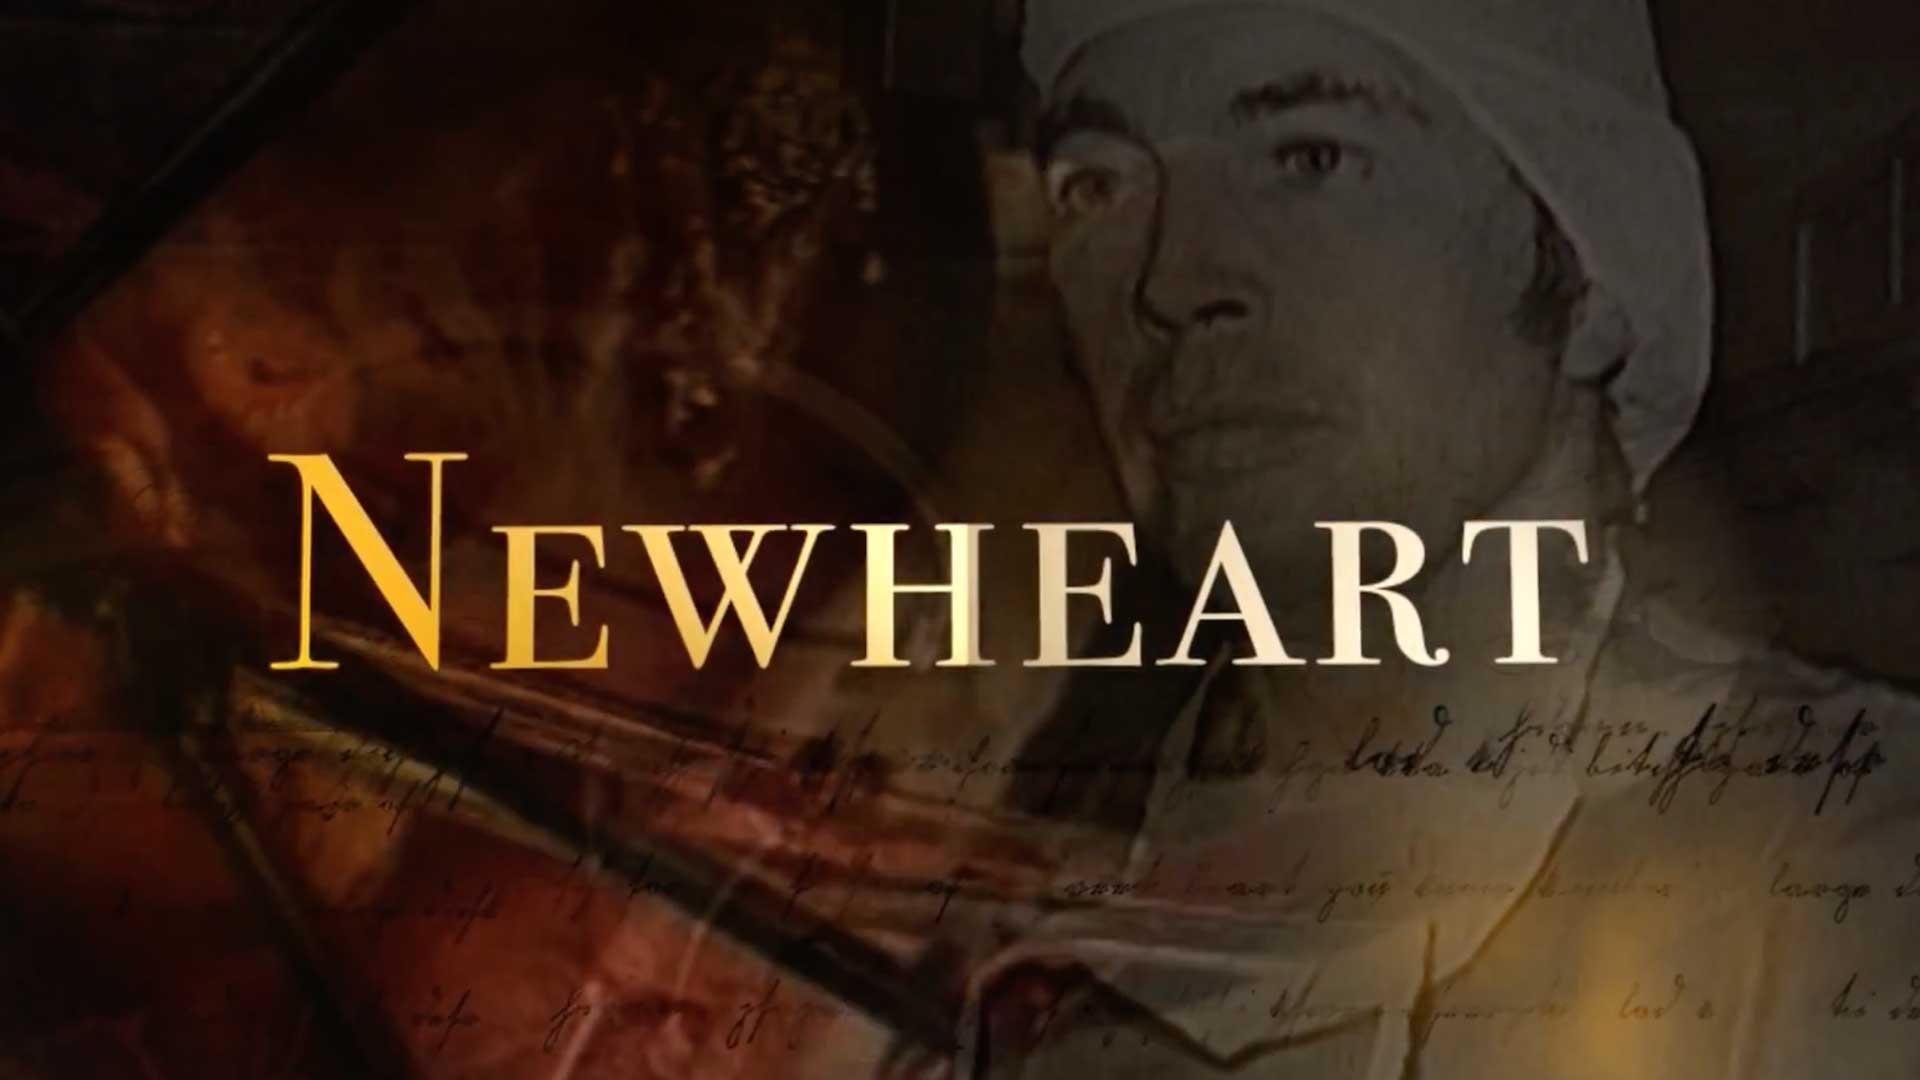 New Heart - The Incredible Journey